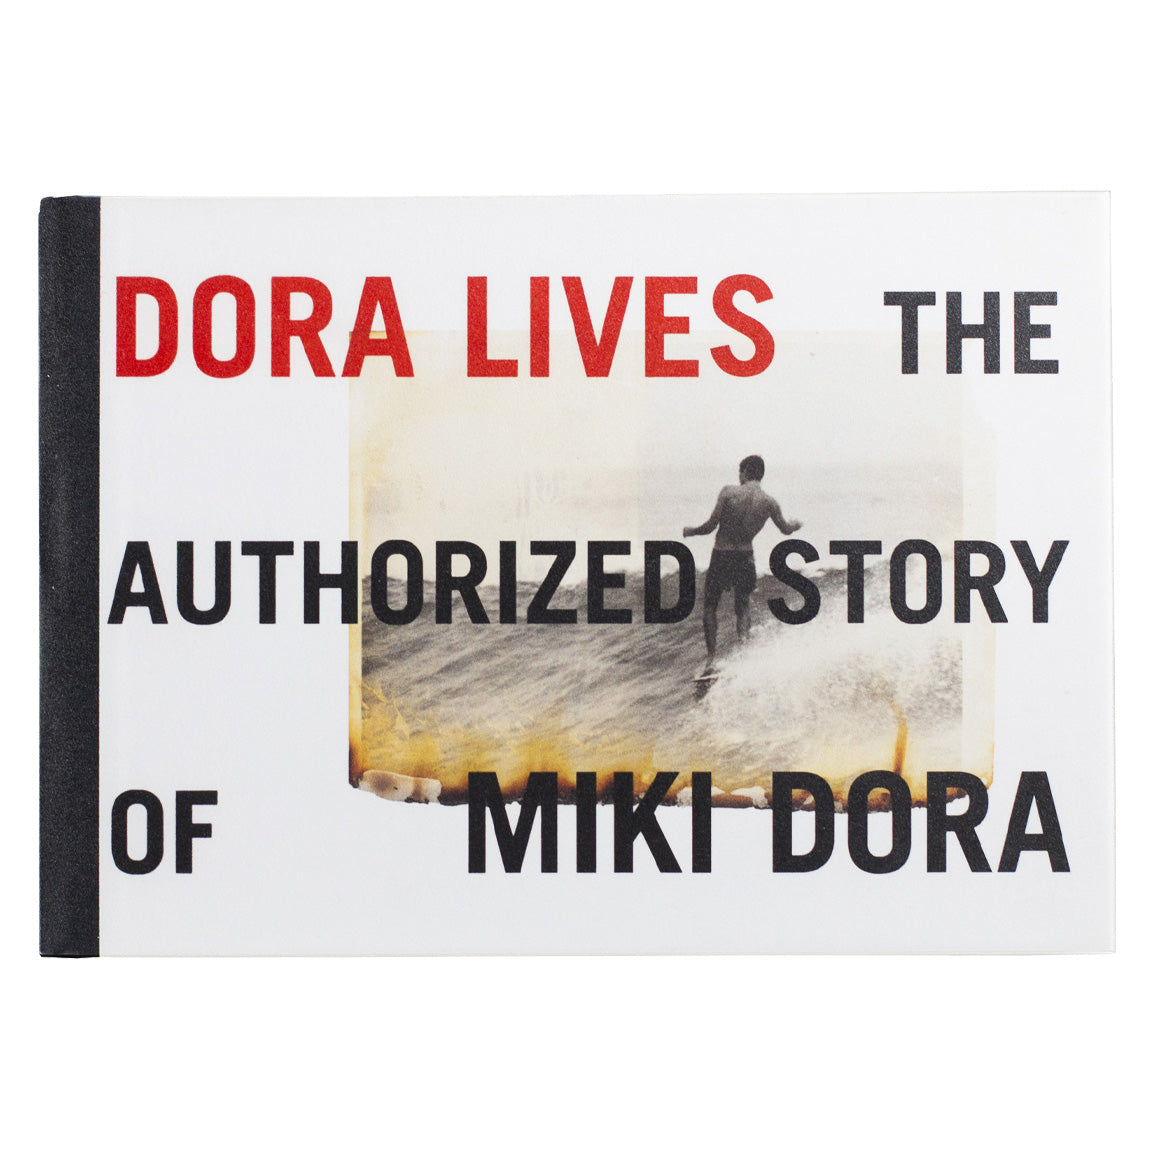 DORA LIVES: THEAUTHORIZED STORY OF MIKI DORA